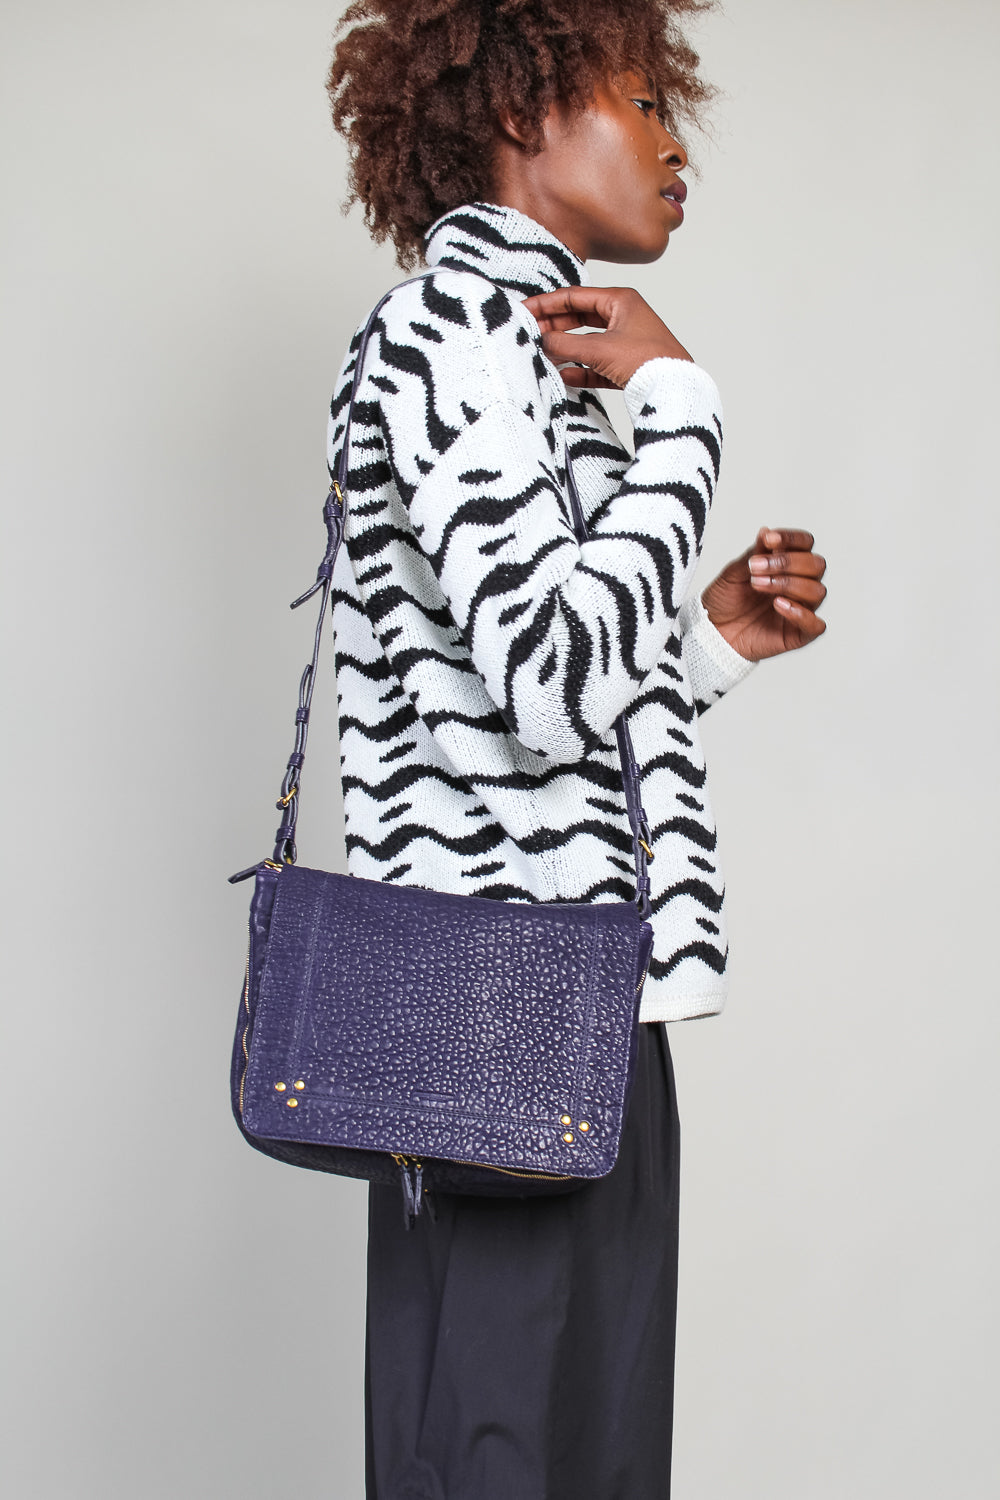 Igor Crossbody bag in Deep Purple